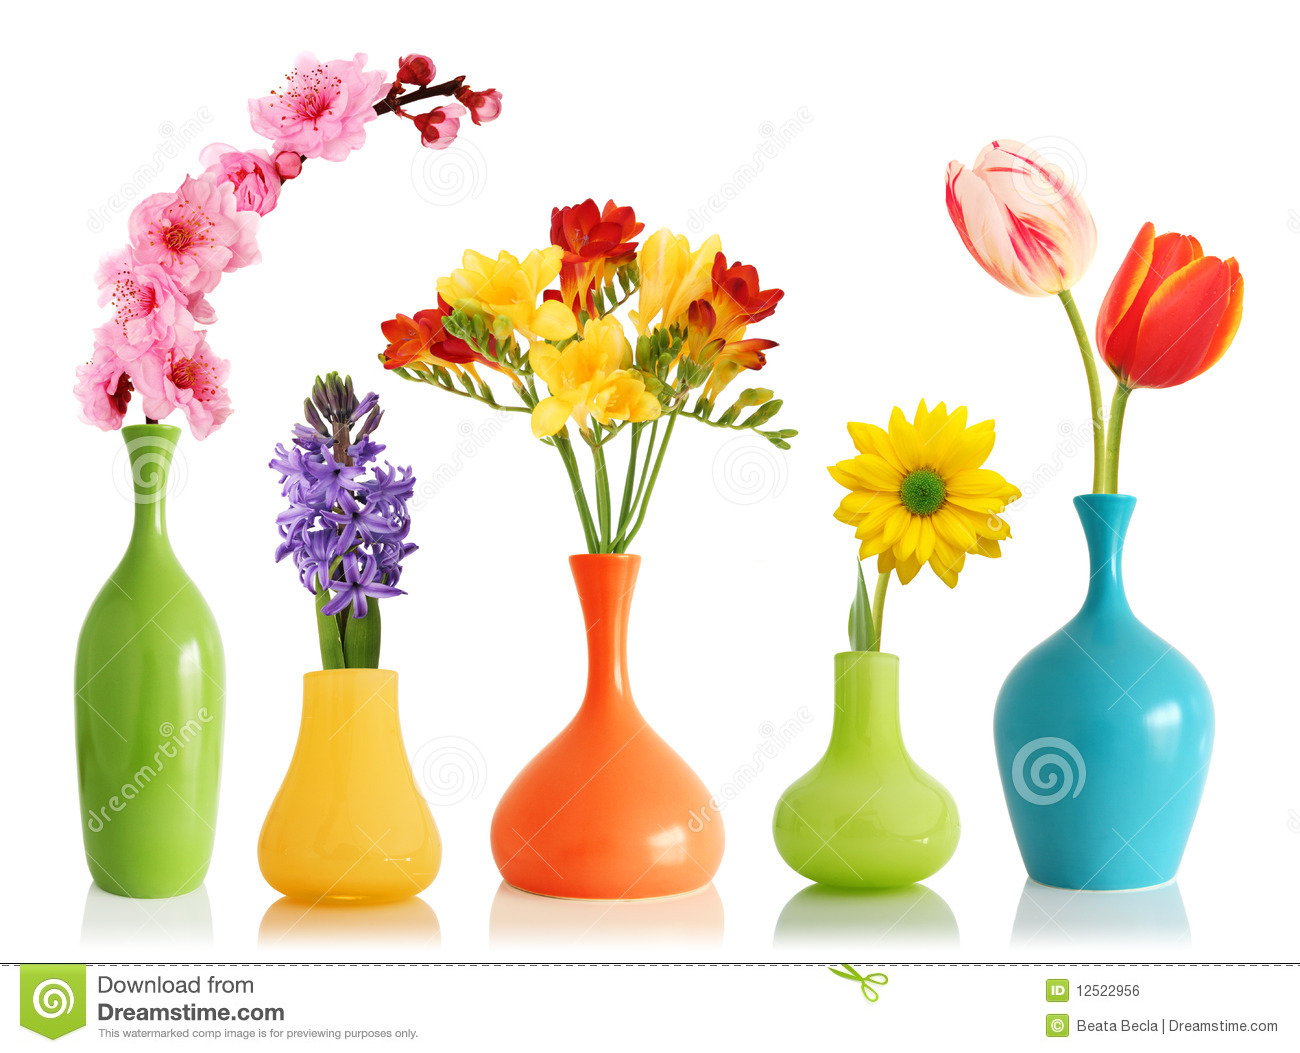 Free images spring flowers jpg freeuse download Spring Flowers In Vases Royalty Free Stock Image - Image: 12522956 jpg freeuse download